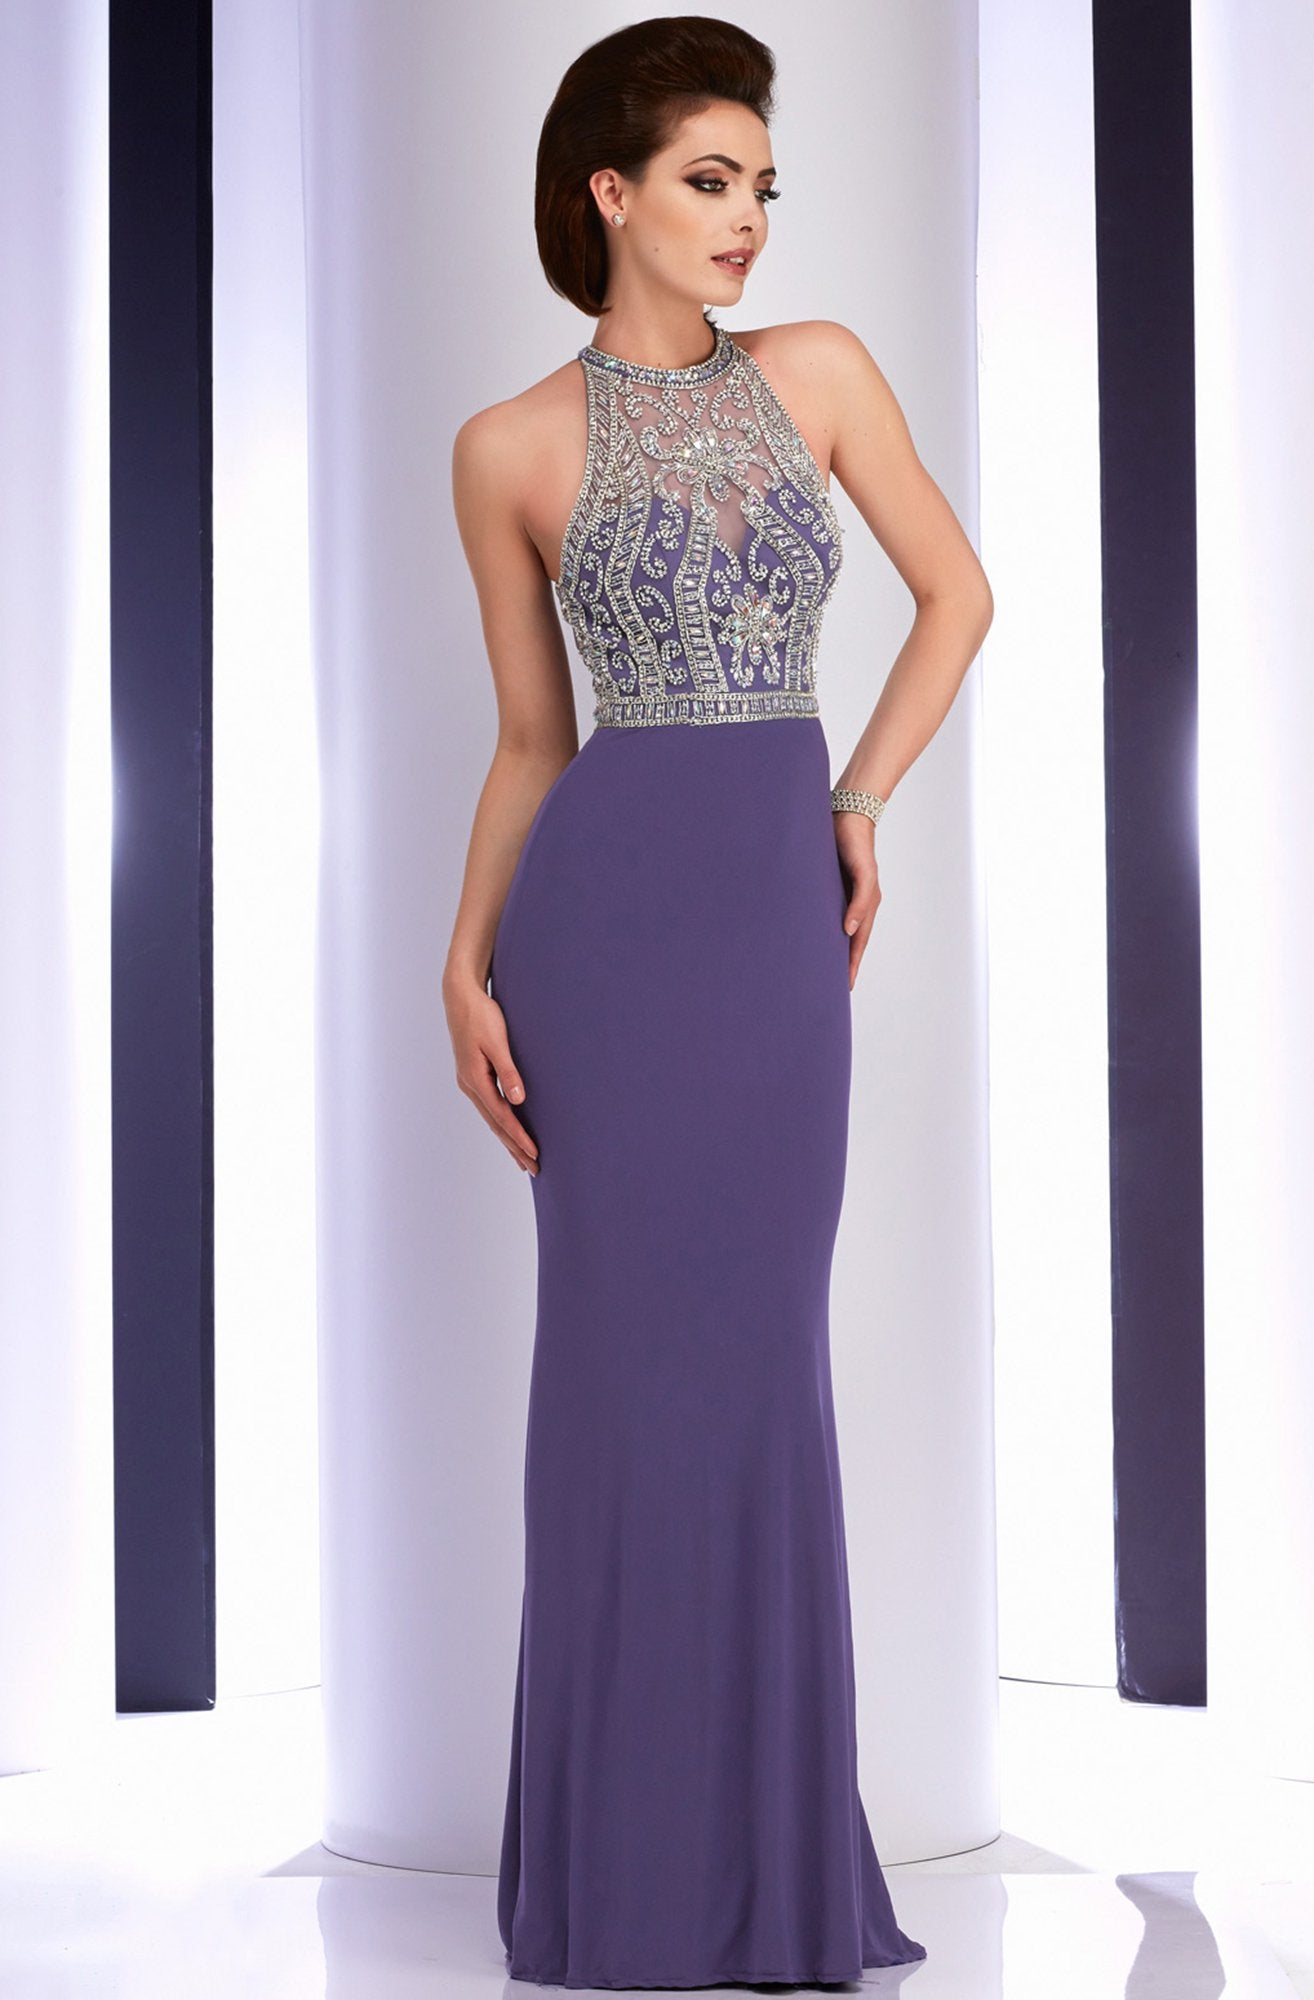 Clarisse - 2807 Crystal Festooned Halter Gown in Purple